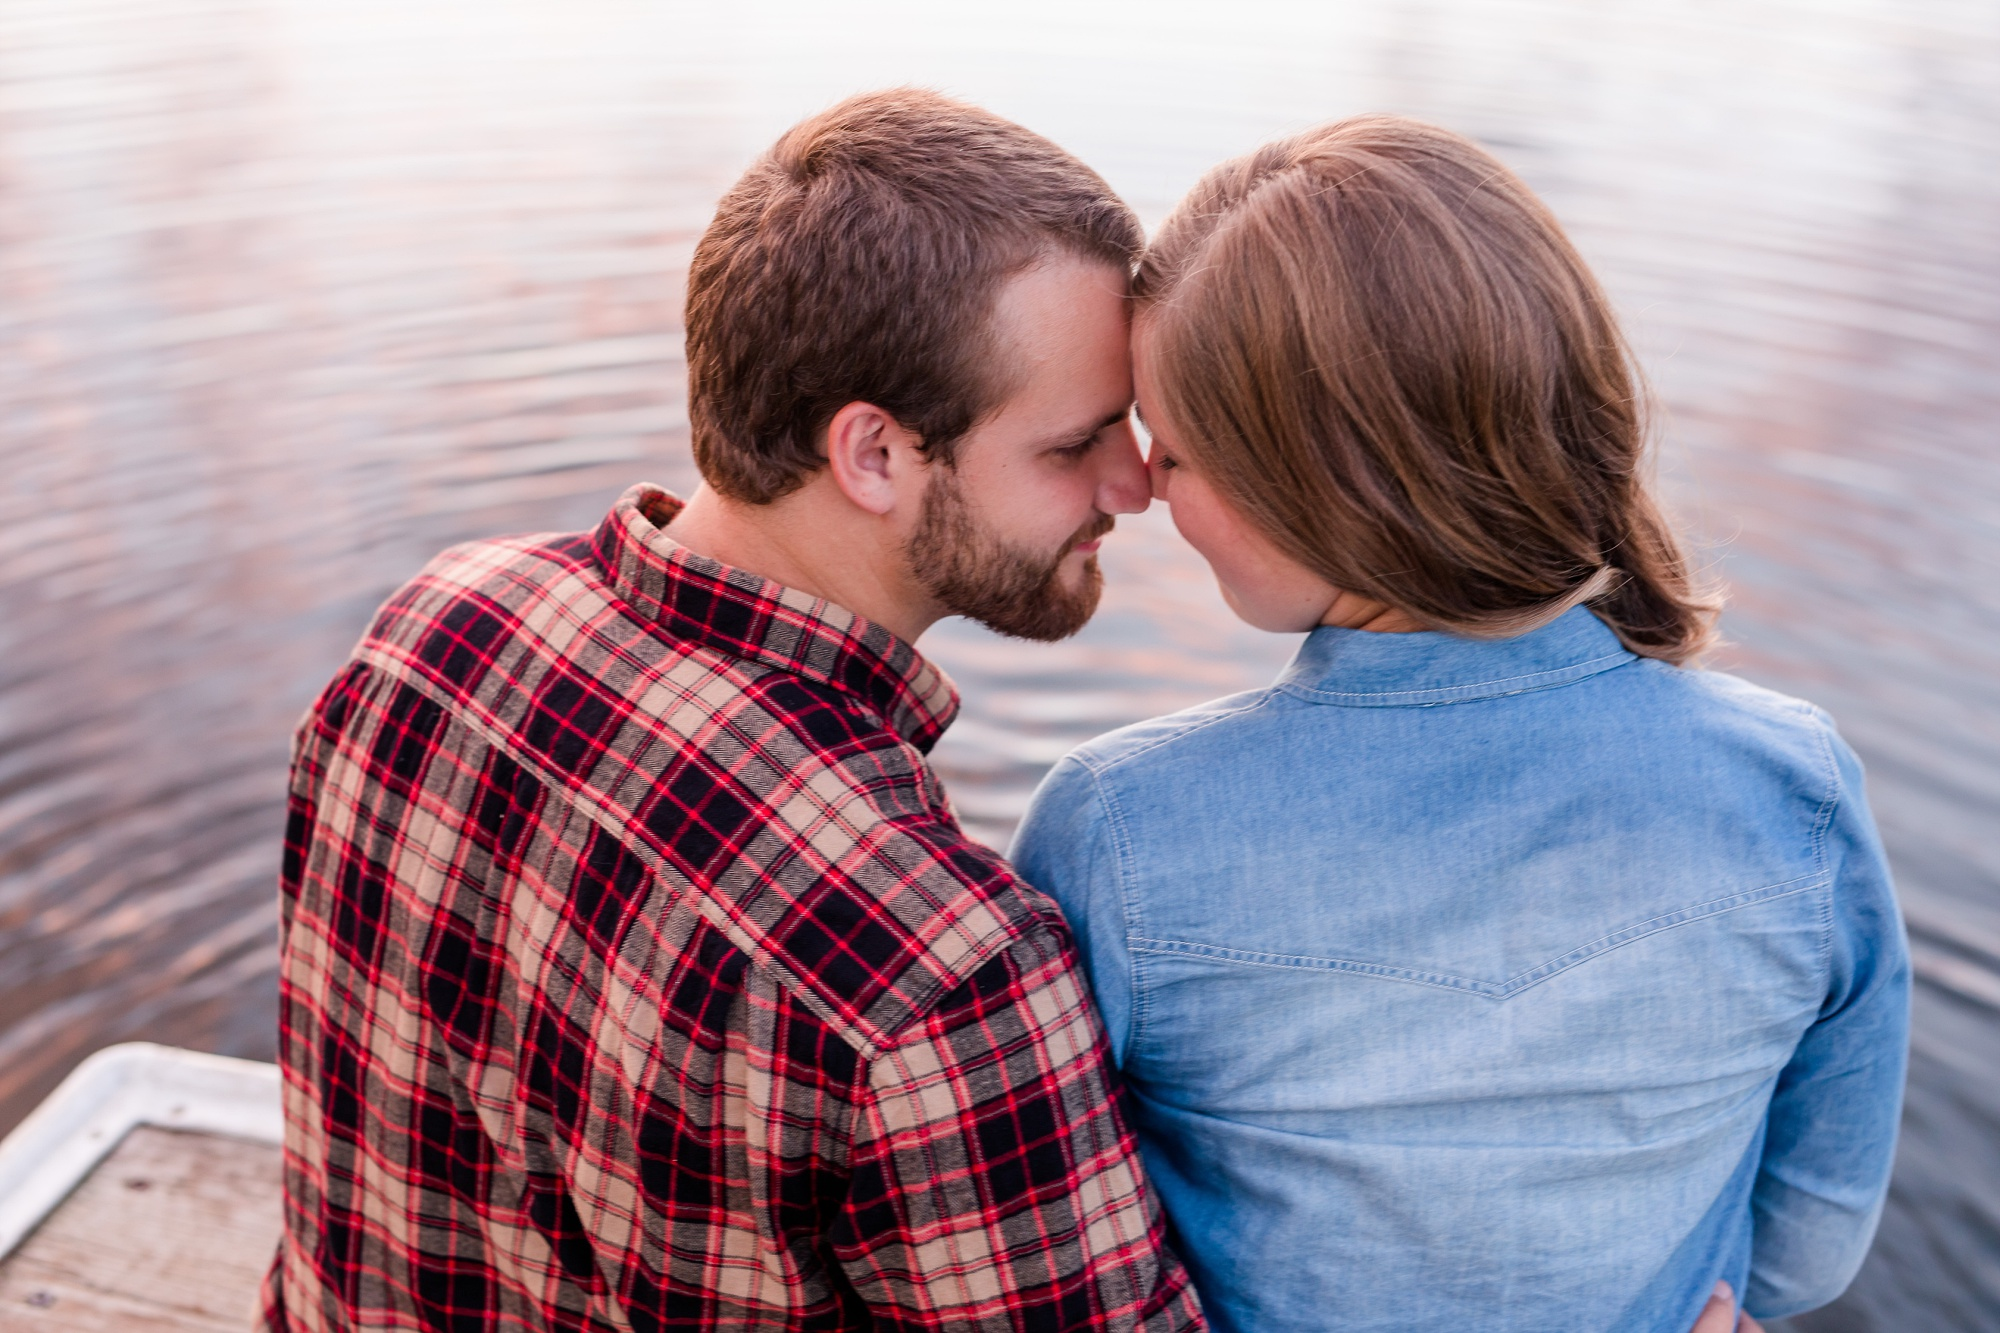 AmberLangerudPhotography_Countryside Engagement Session in Minnesota_3144.jpg